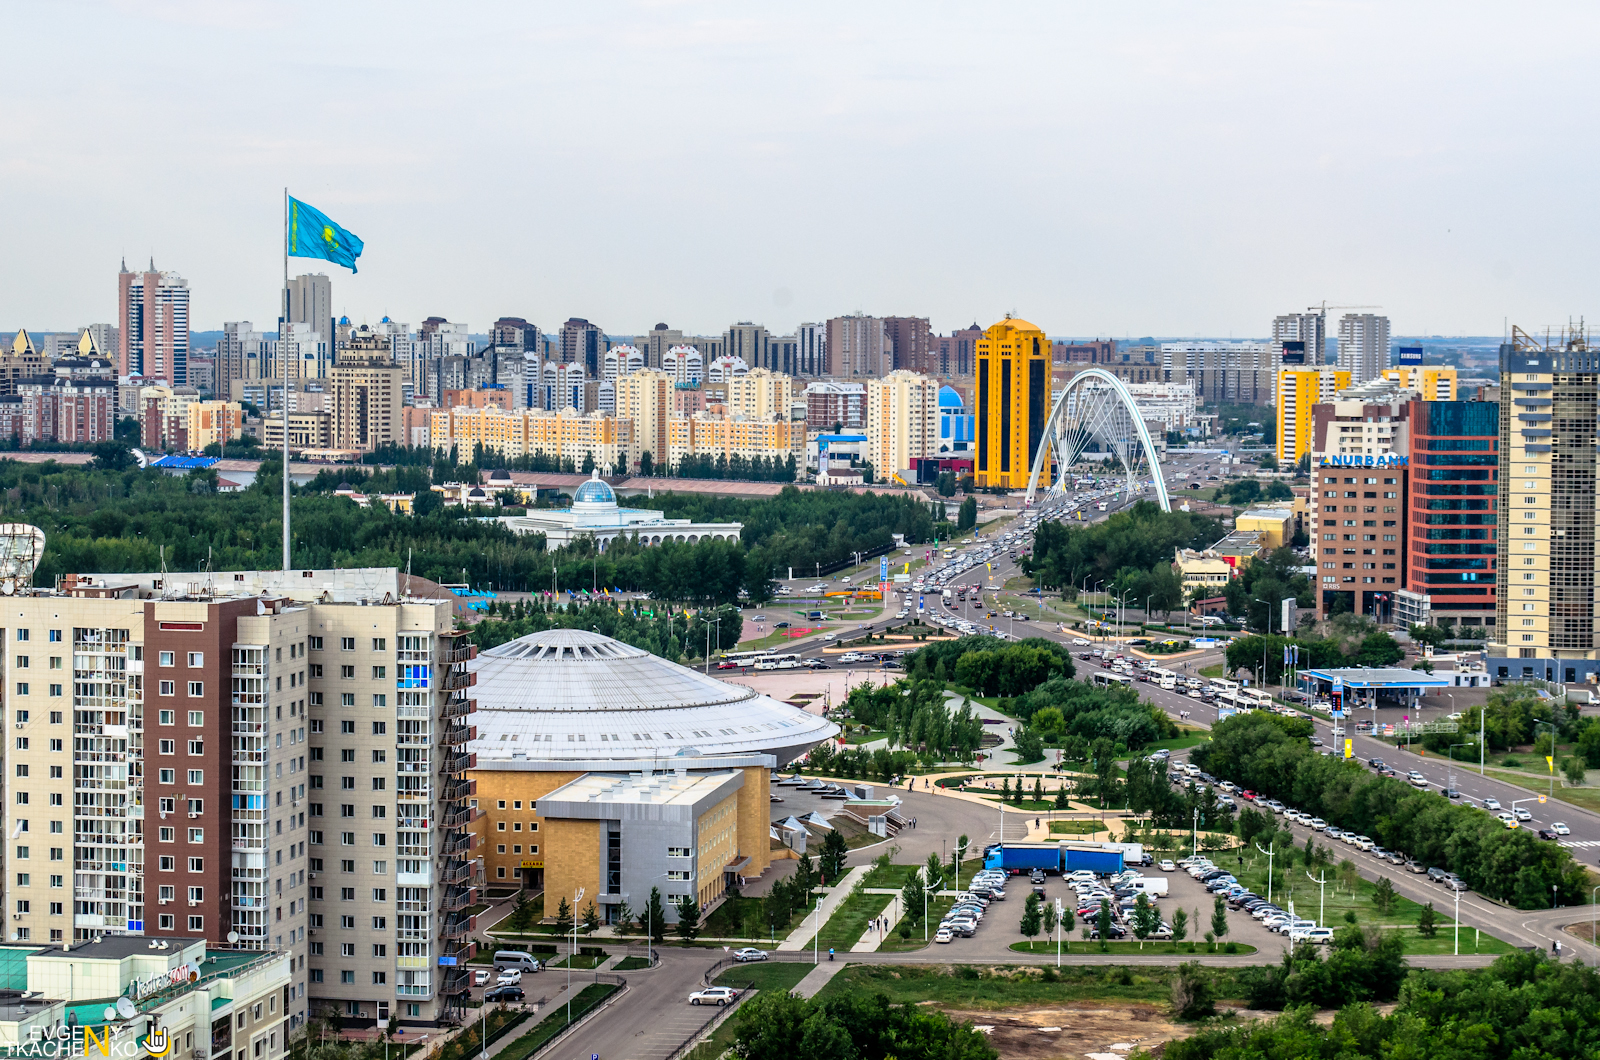 astana city A list of 6 best and quirky things to do in astana, kazakhstan includes tips on where to stay and where to eat and drink in this wacky capital.